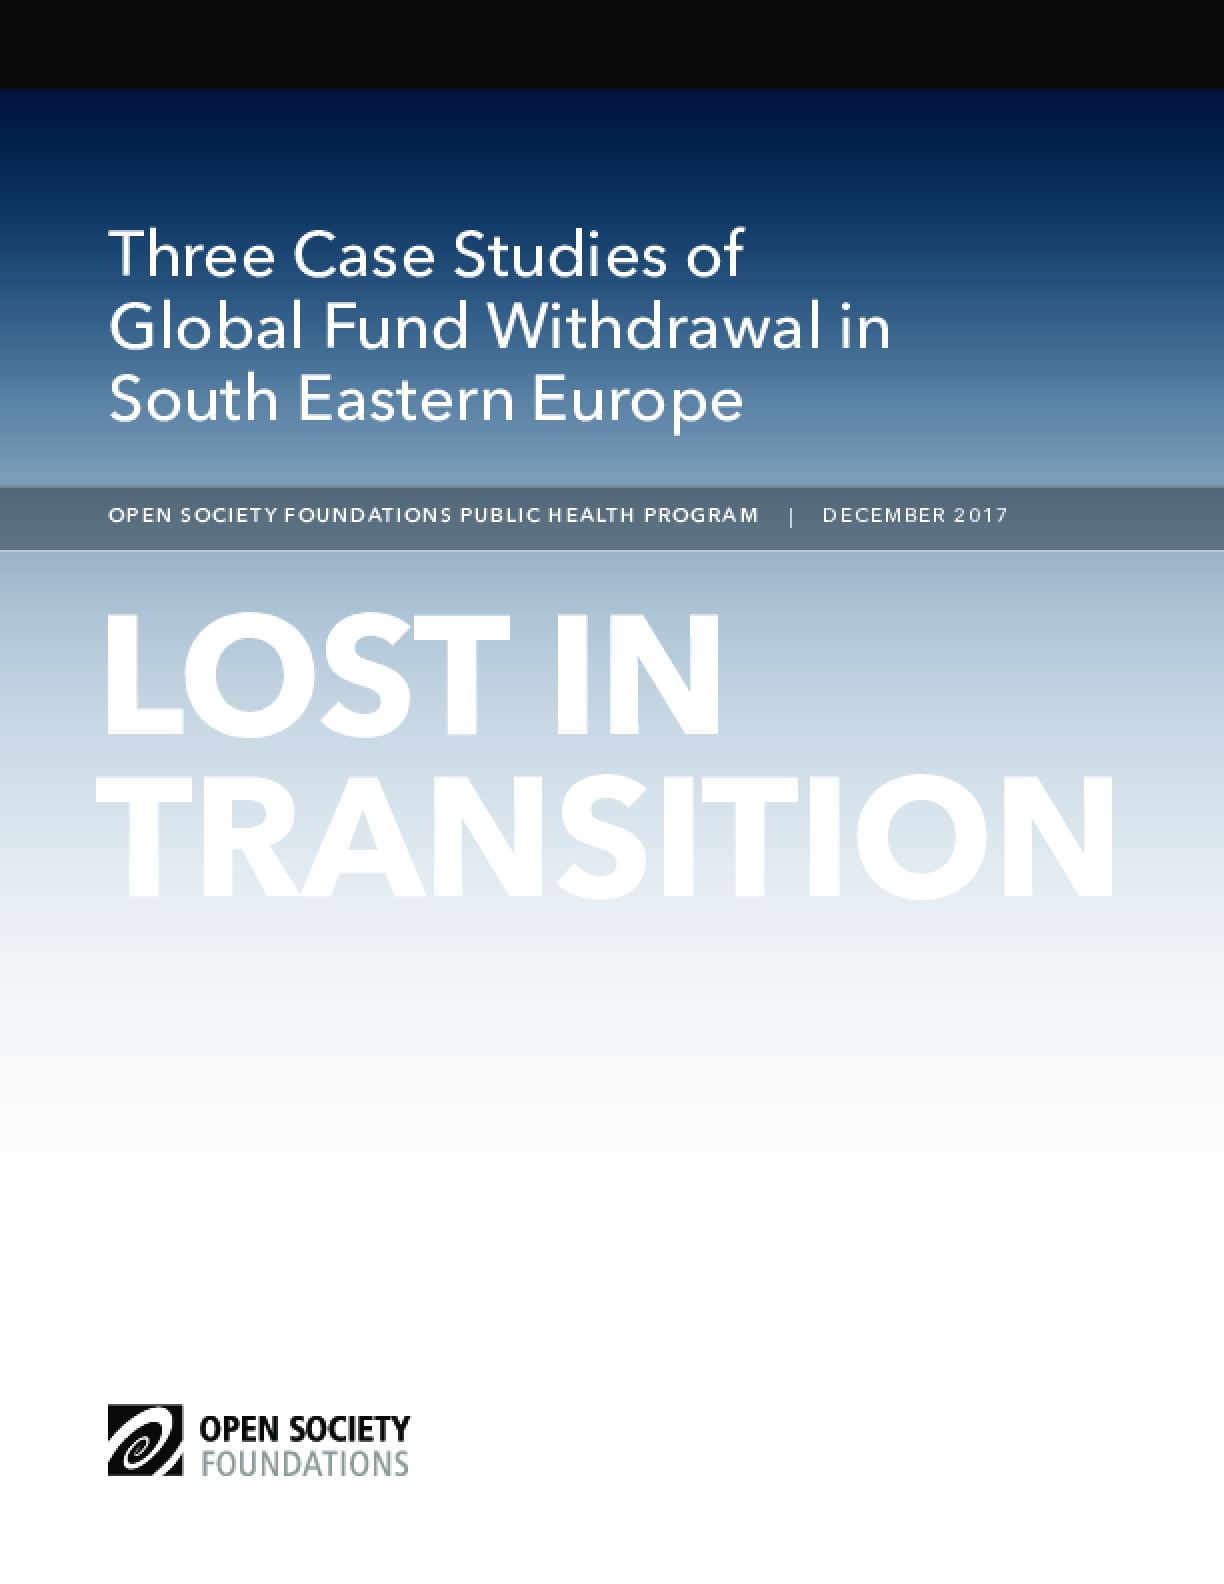 Lost in Transition: Three Case Studies of Global Fund Withdrawal in South Eastern Europe